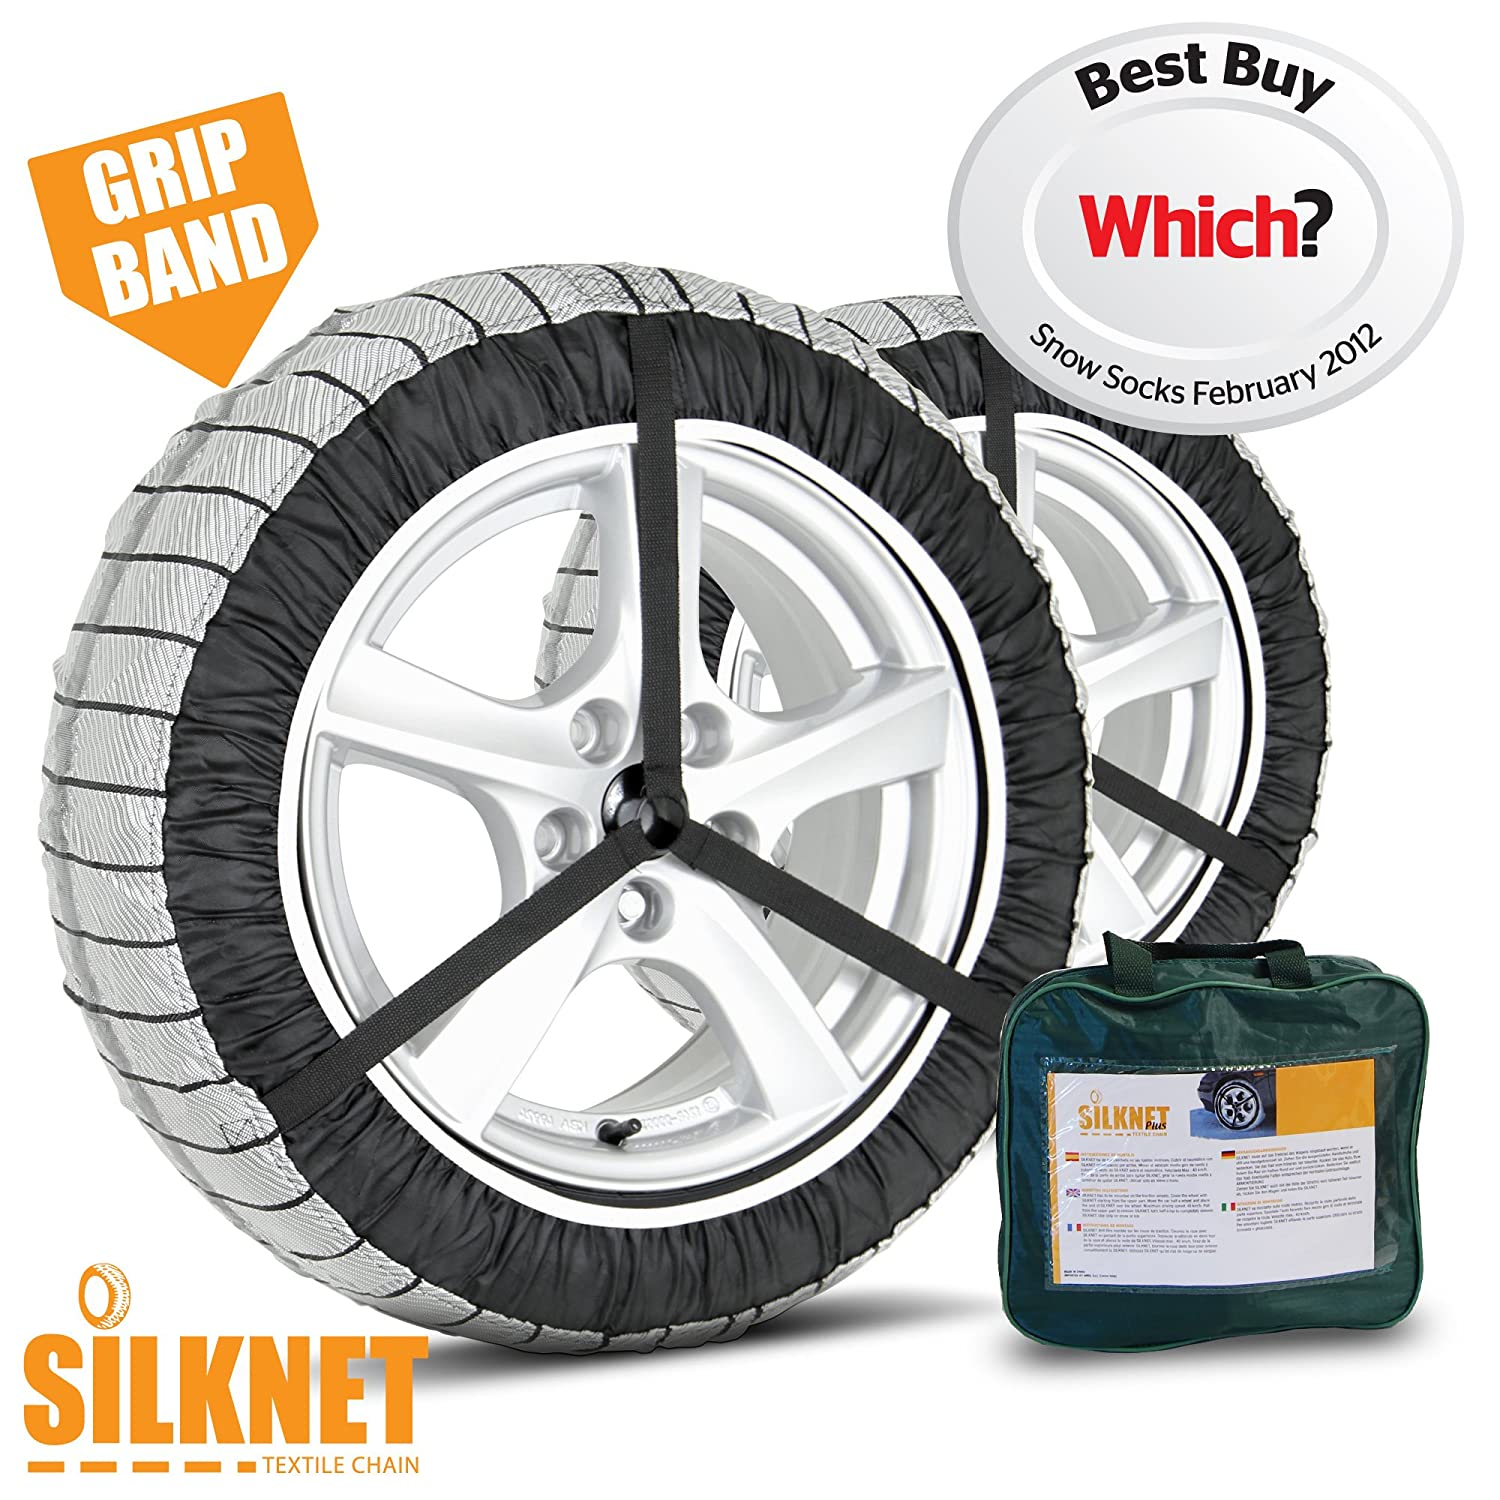 Silknet Snow Socks - Size 40 - Awarded 'Which Best Buy' - Universal To Fit 195/50 R15 , 195/55 R15 , 205/40 R17 and More Silknet Plus